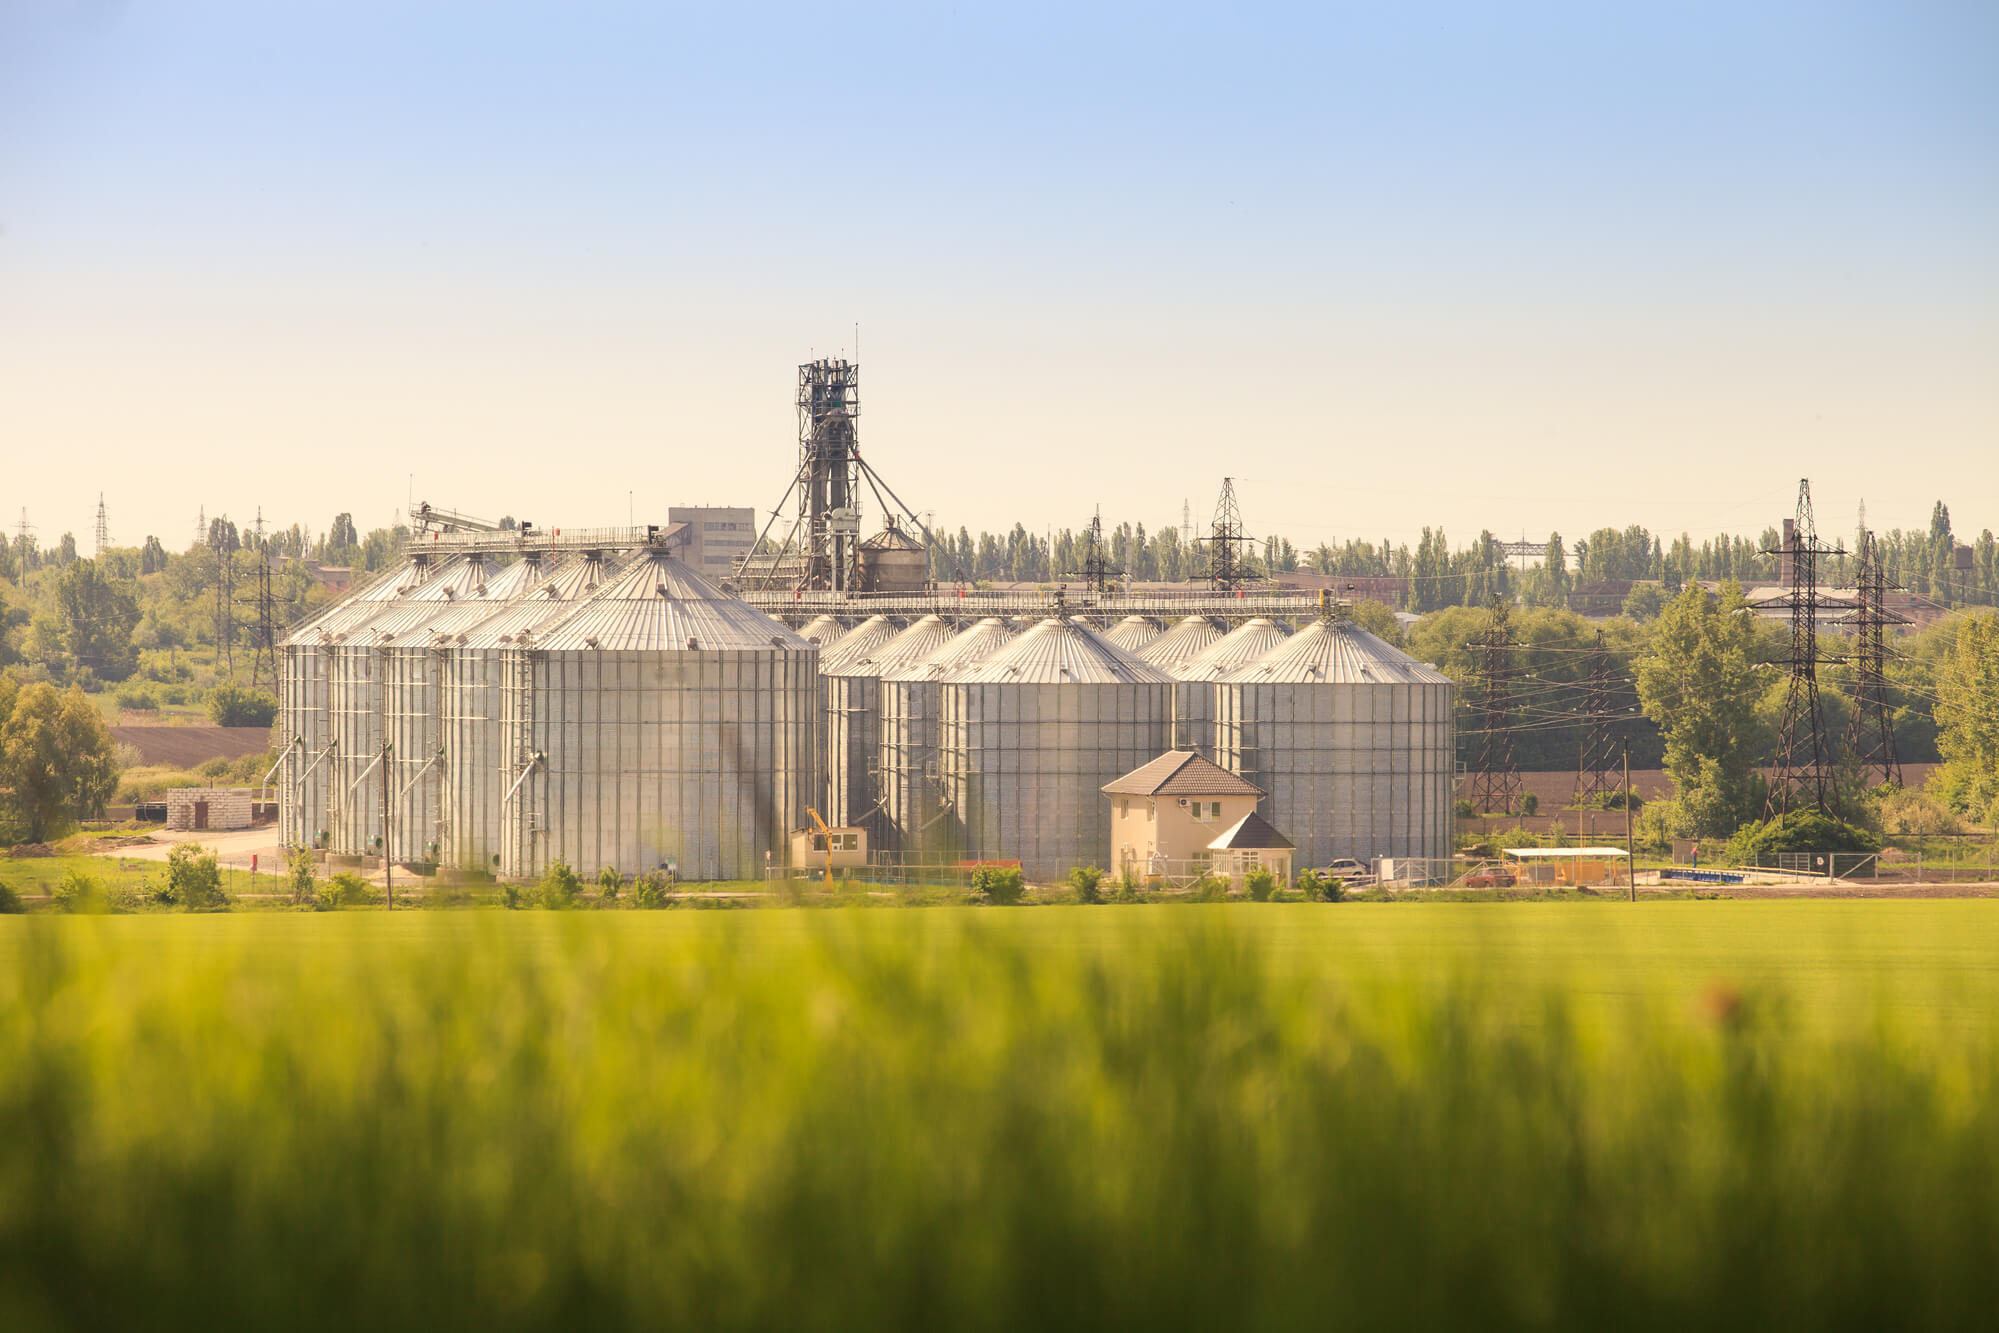 Agroholdings and Agricultural Science in Ukraine: Uneasy Bedfellows